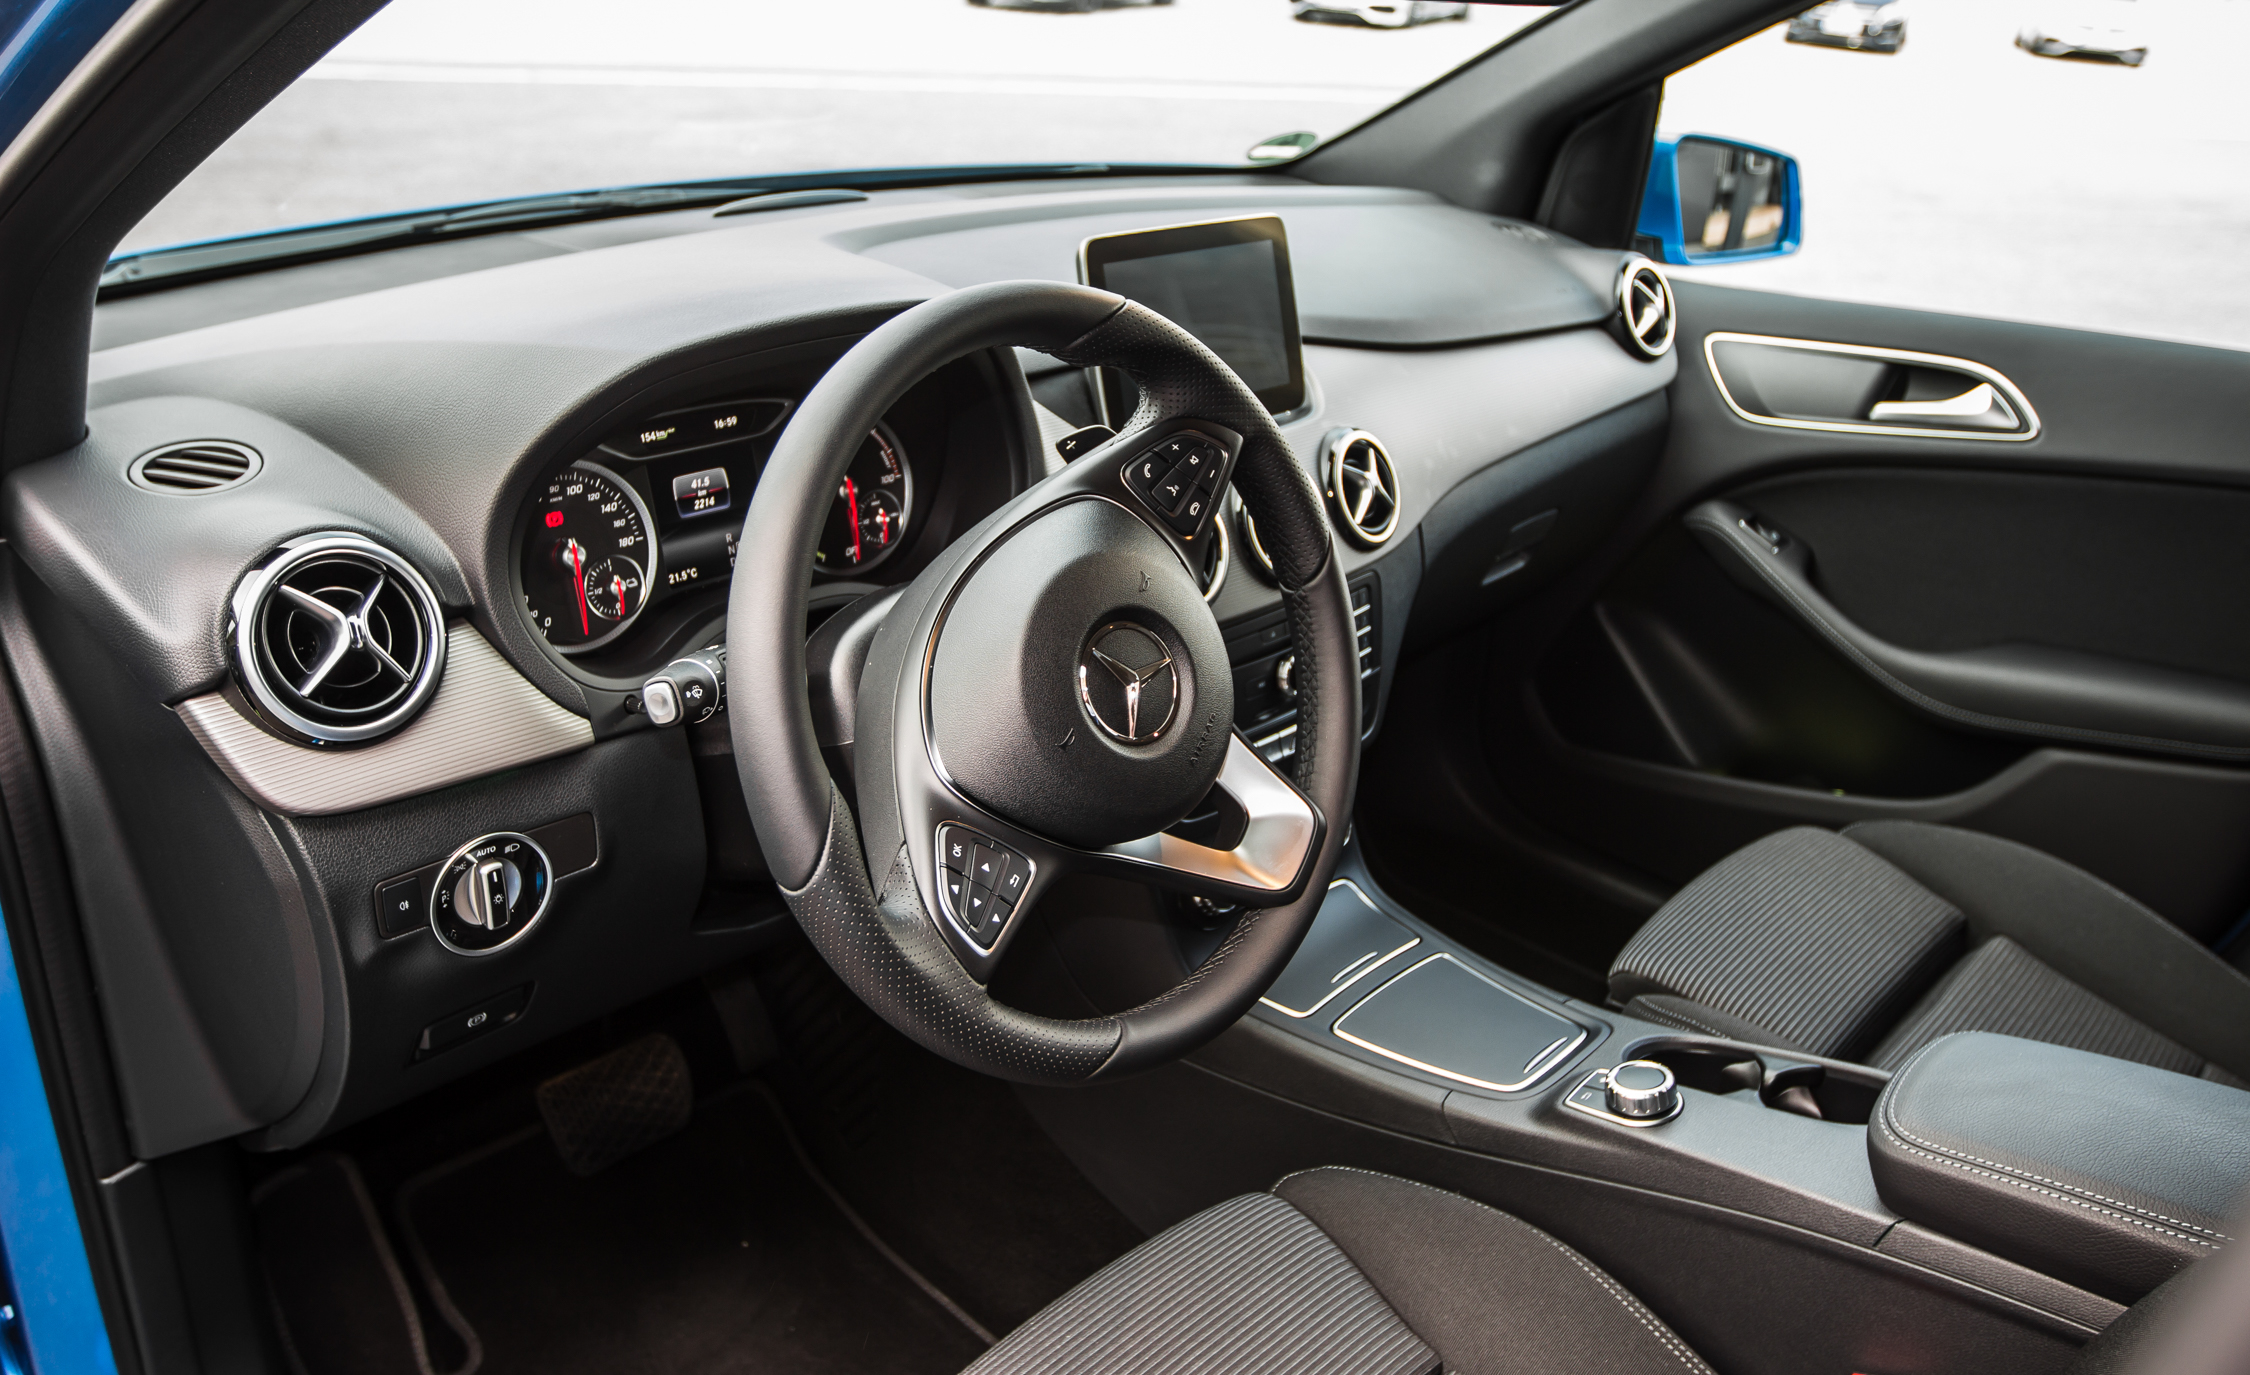 2017 Mercedes Benz B250e Interior Driver Cockpit (View 10 of 24)